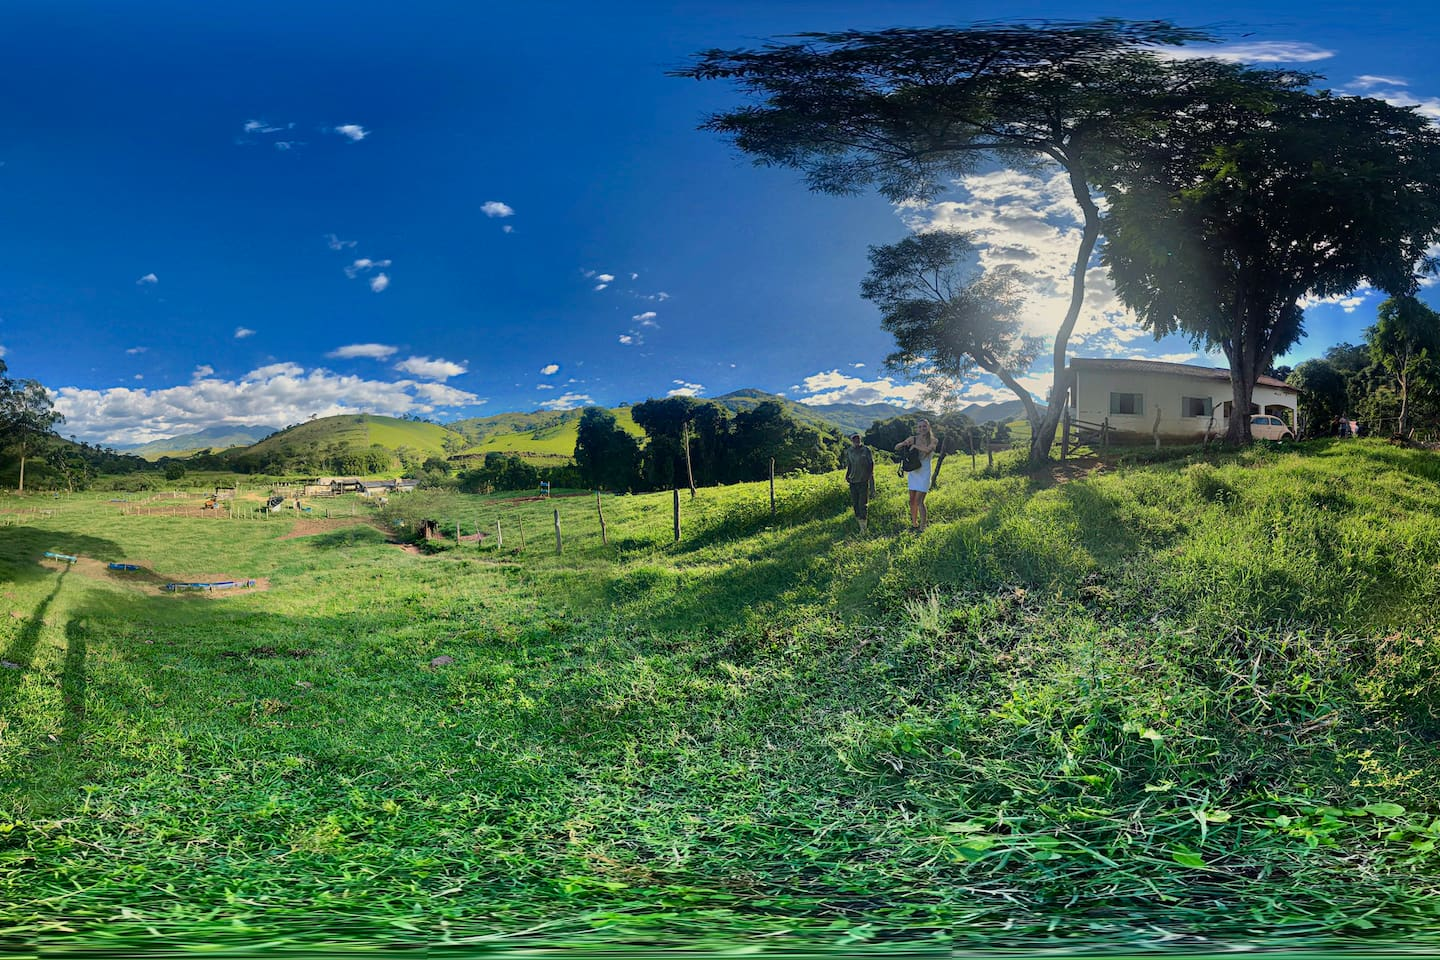 360 view of the southern section of the farm, by the main house.